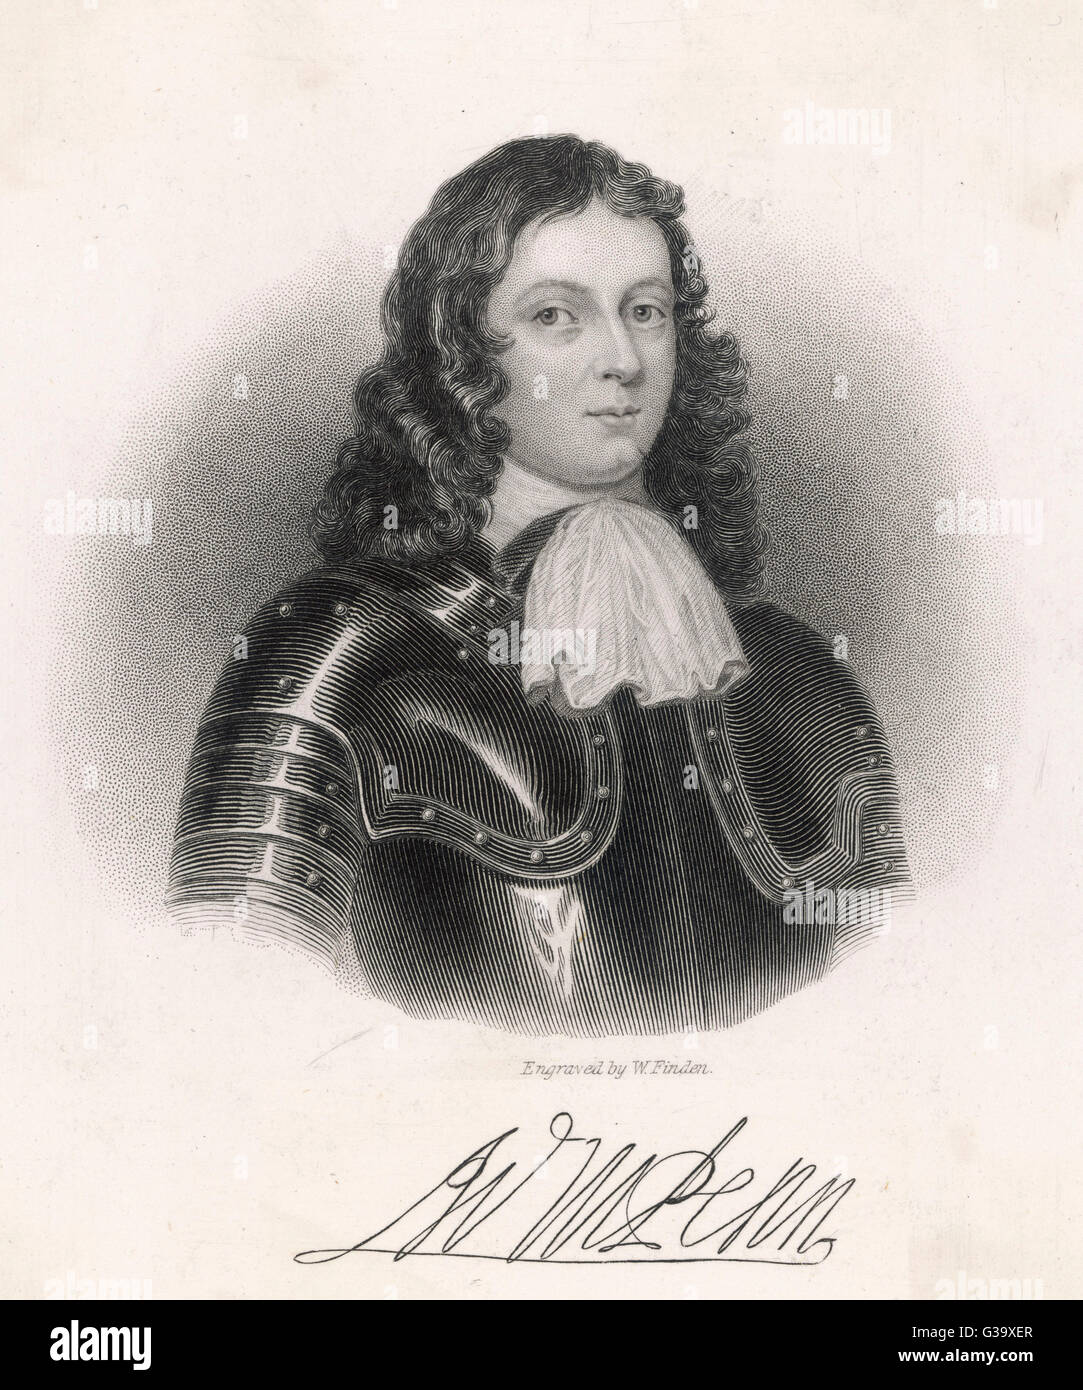 WILLIAM PENN  English religious reformer and  colonialist as a young man       Date: 1644 - 1718 - Stock Image